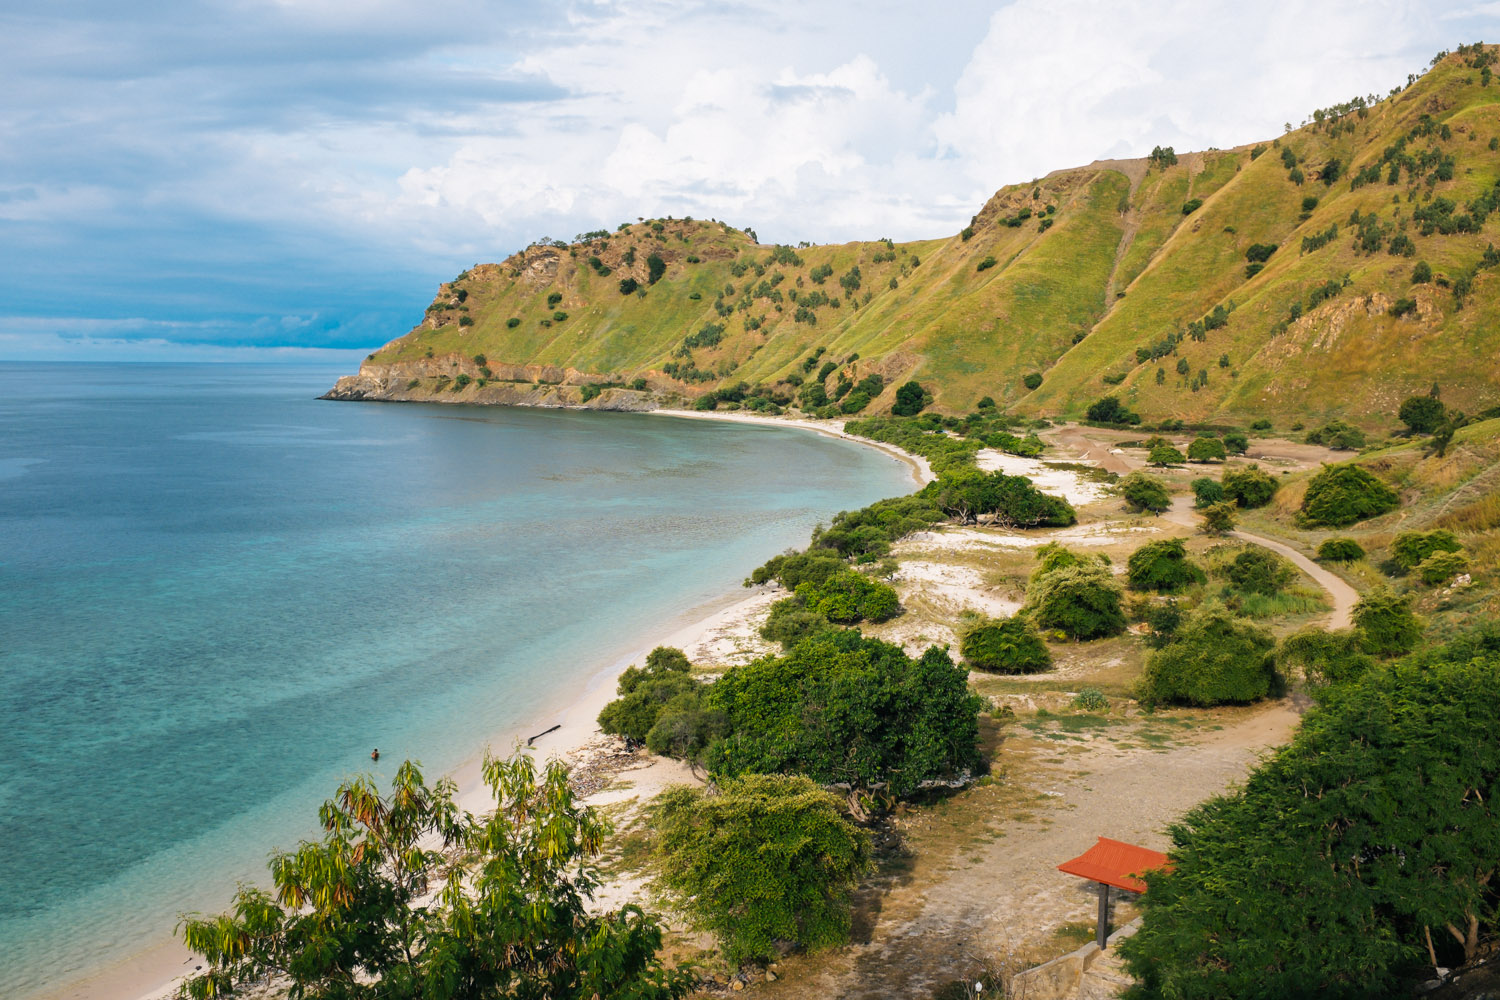 An unspoiled beach surrounded by greenmountains in Dili